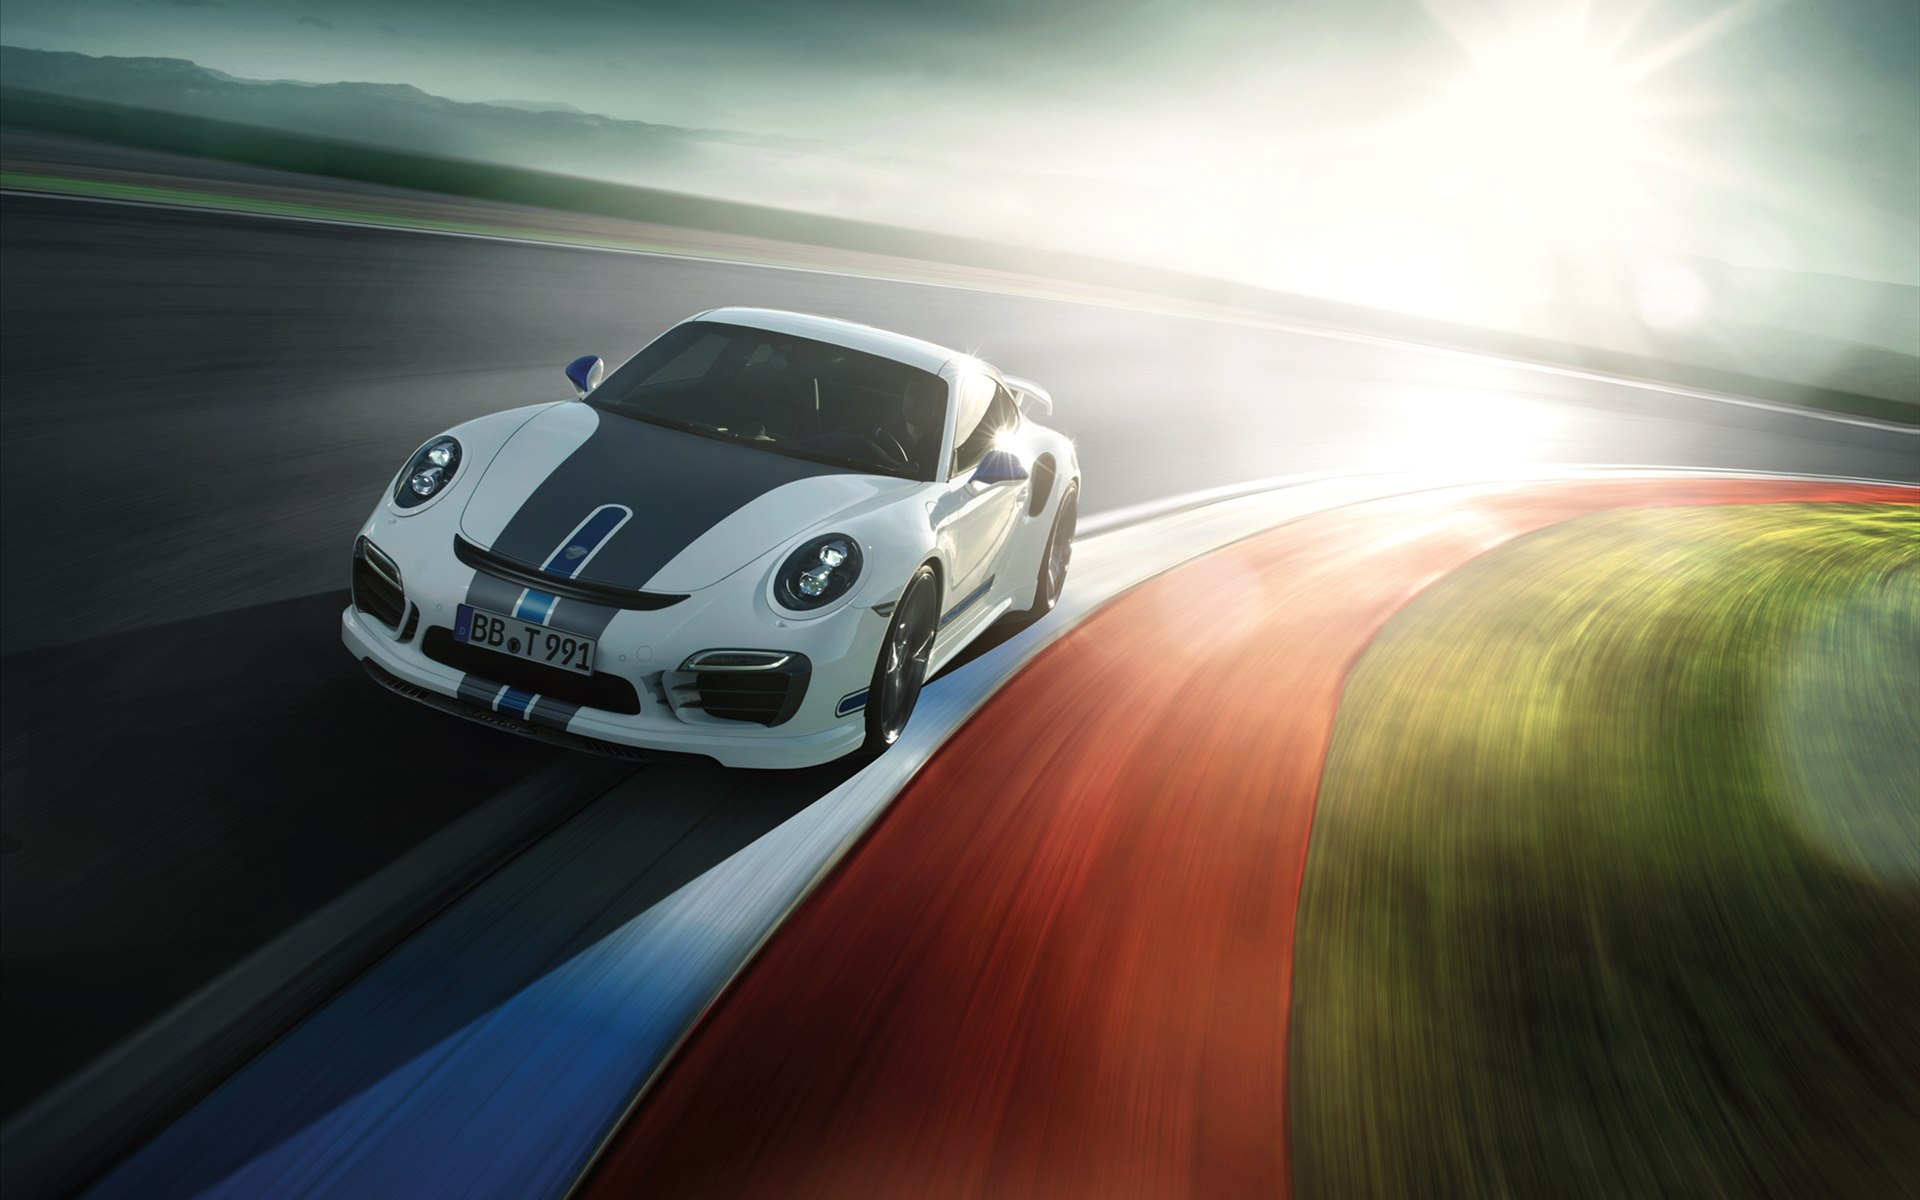 2014 techart porsche 911 turbo s - Porsche 911 Wallpaper Widescreen